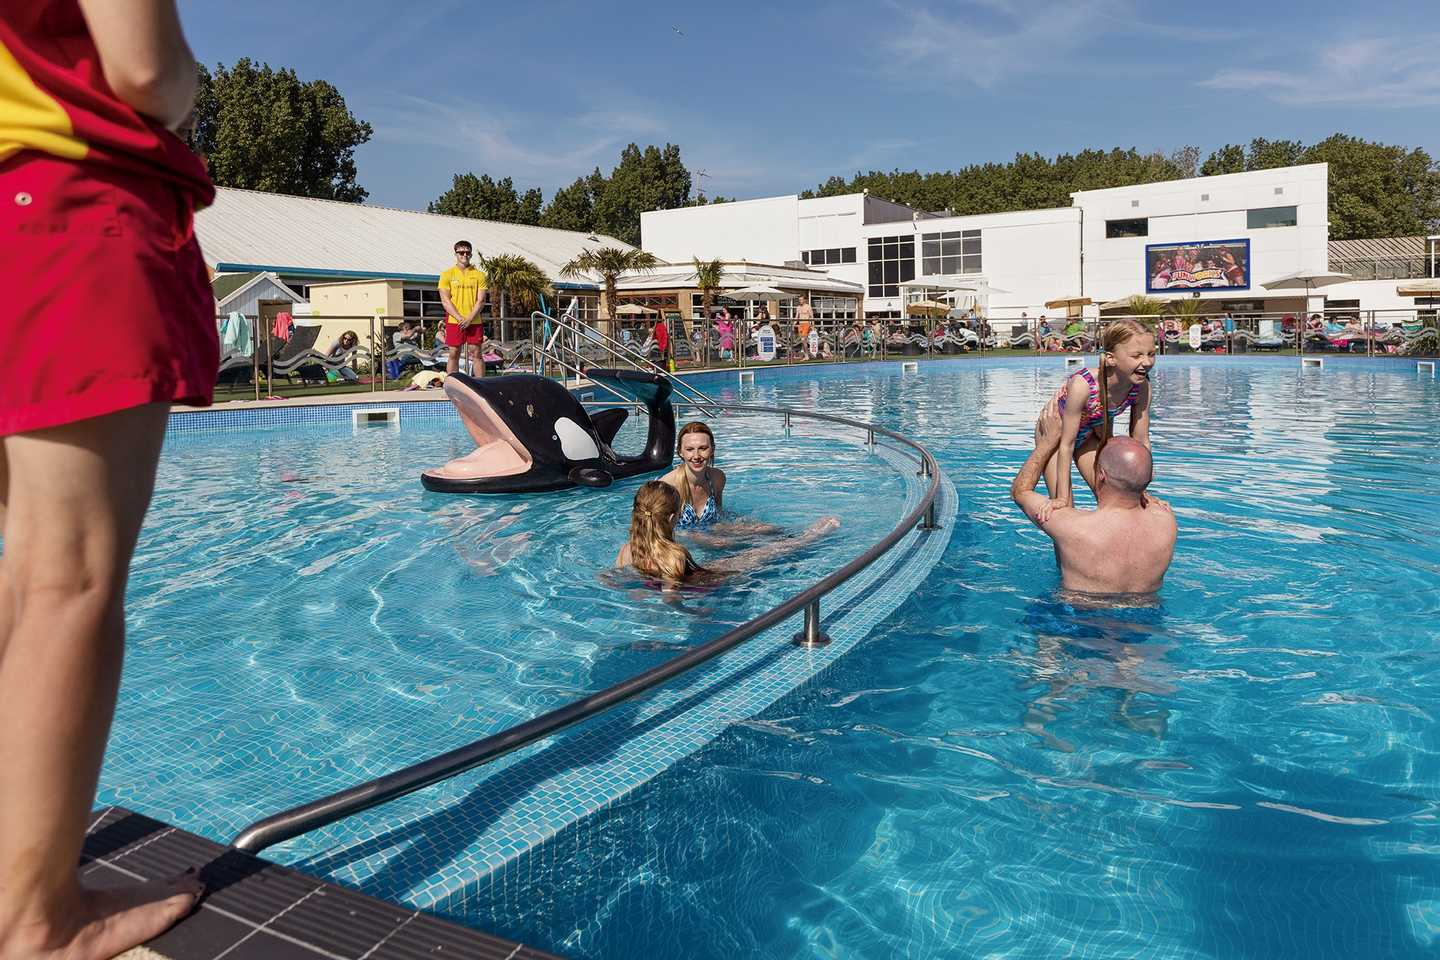 Guests enjoying the heated outdoor pool